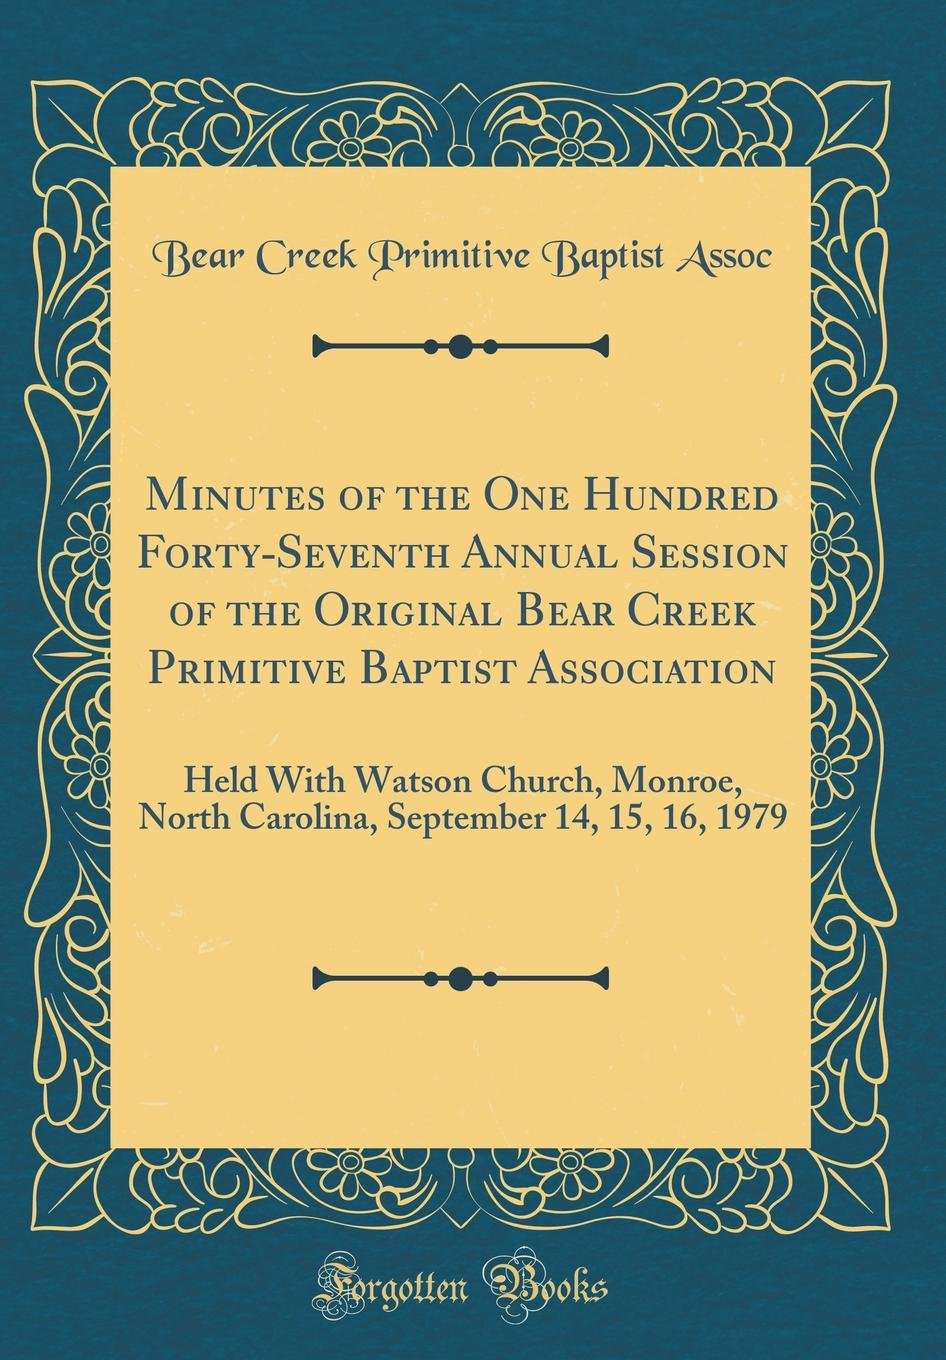 Minutes of the One Hundred Forty-Seventh Annual Session of the Original Bear Creek Primitive Baptist Association: Held with Watson Church, Monroe, ... September 14, 15, 16, 1979 (Classic Reprint) pdf